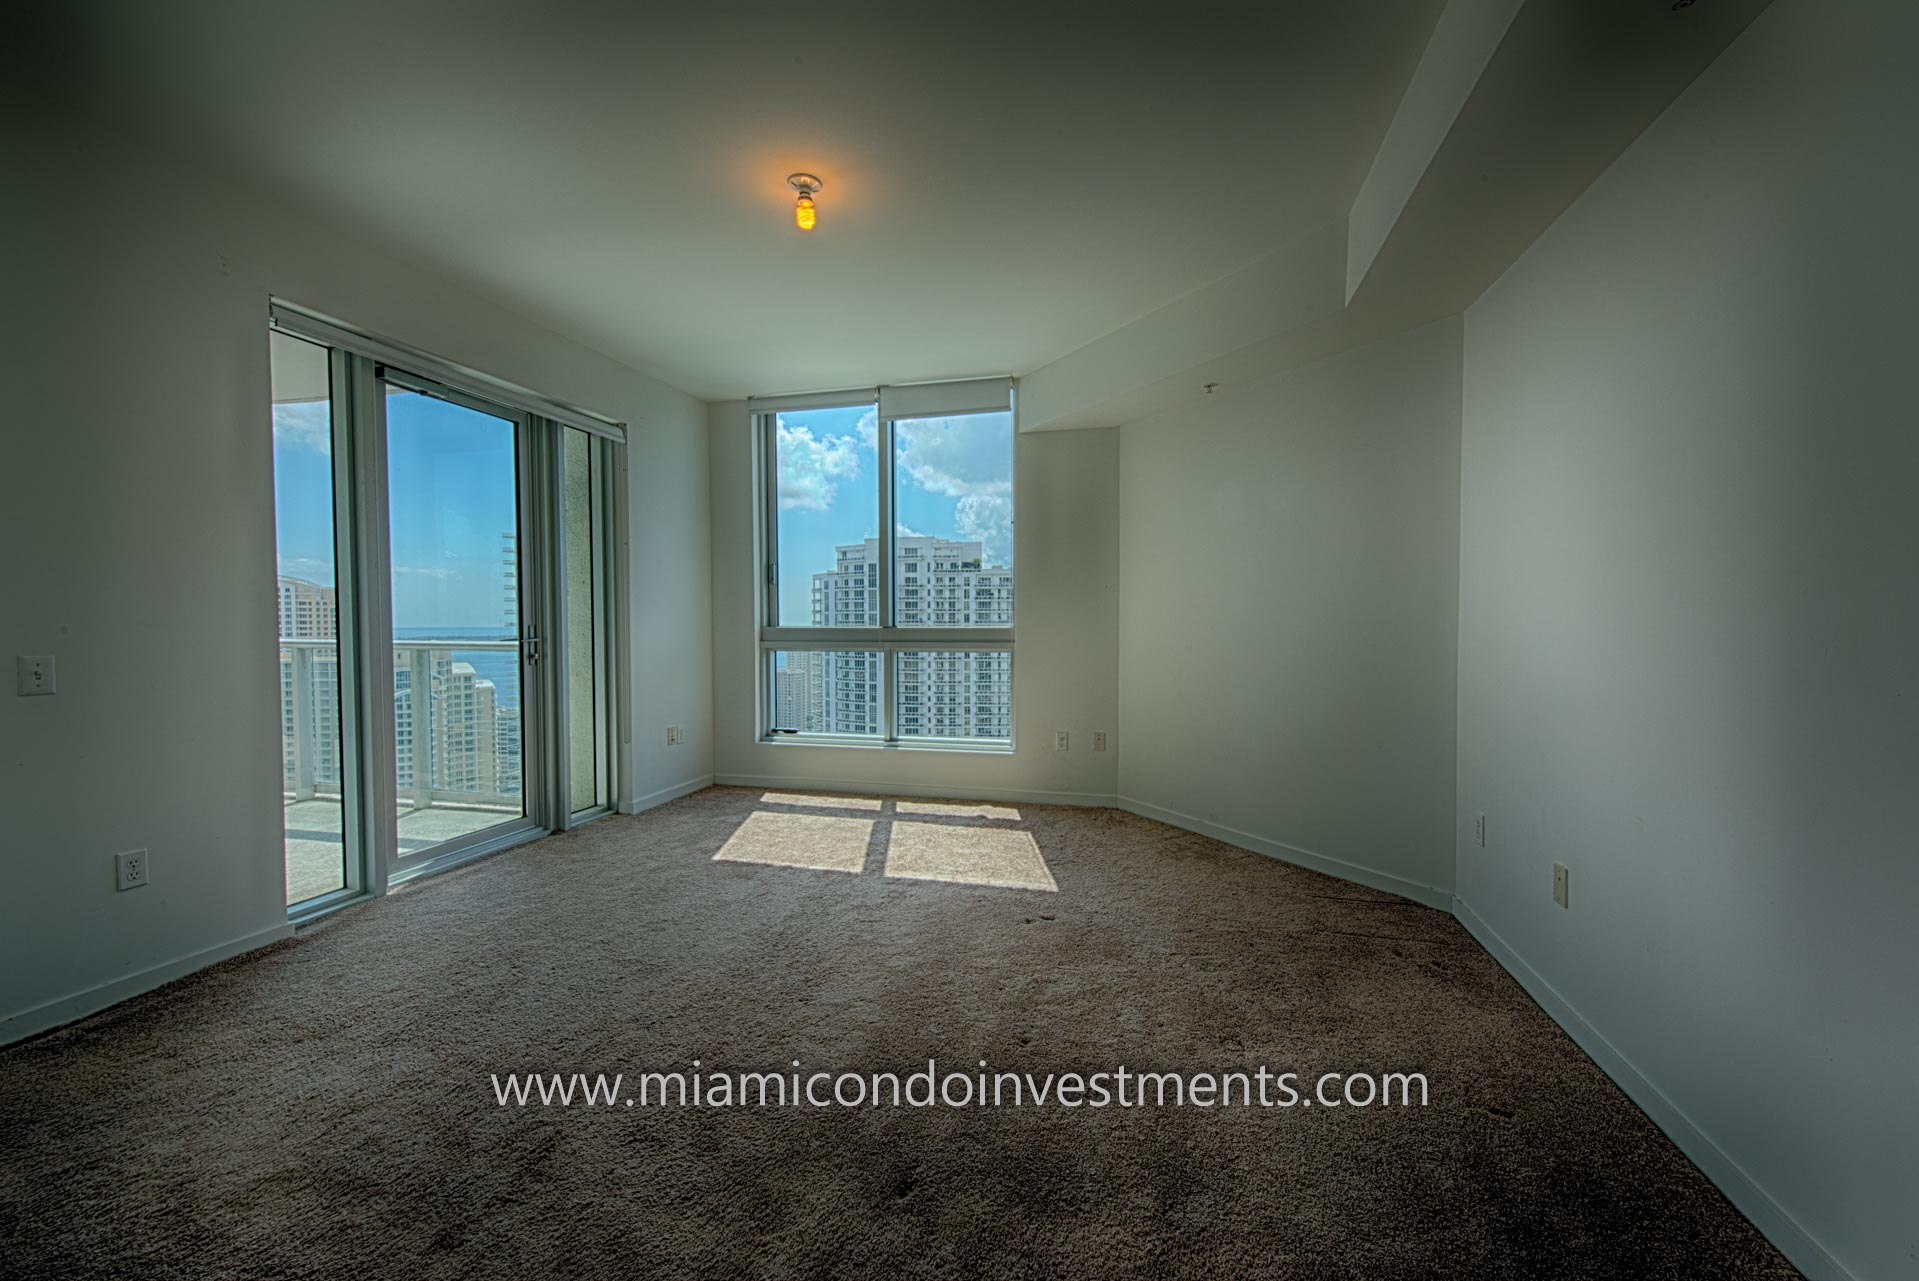 master bedroom with views of the Miami River, Brickell Key, Brickell, and Biscayne Bay